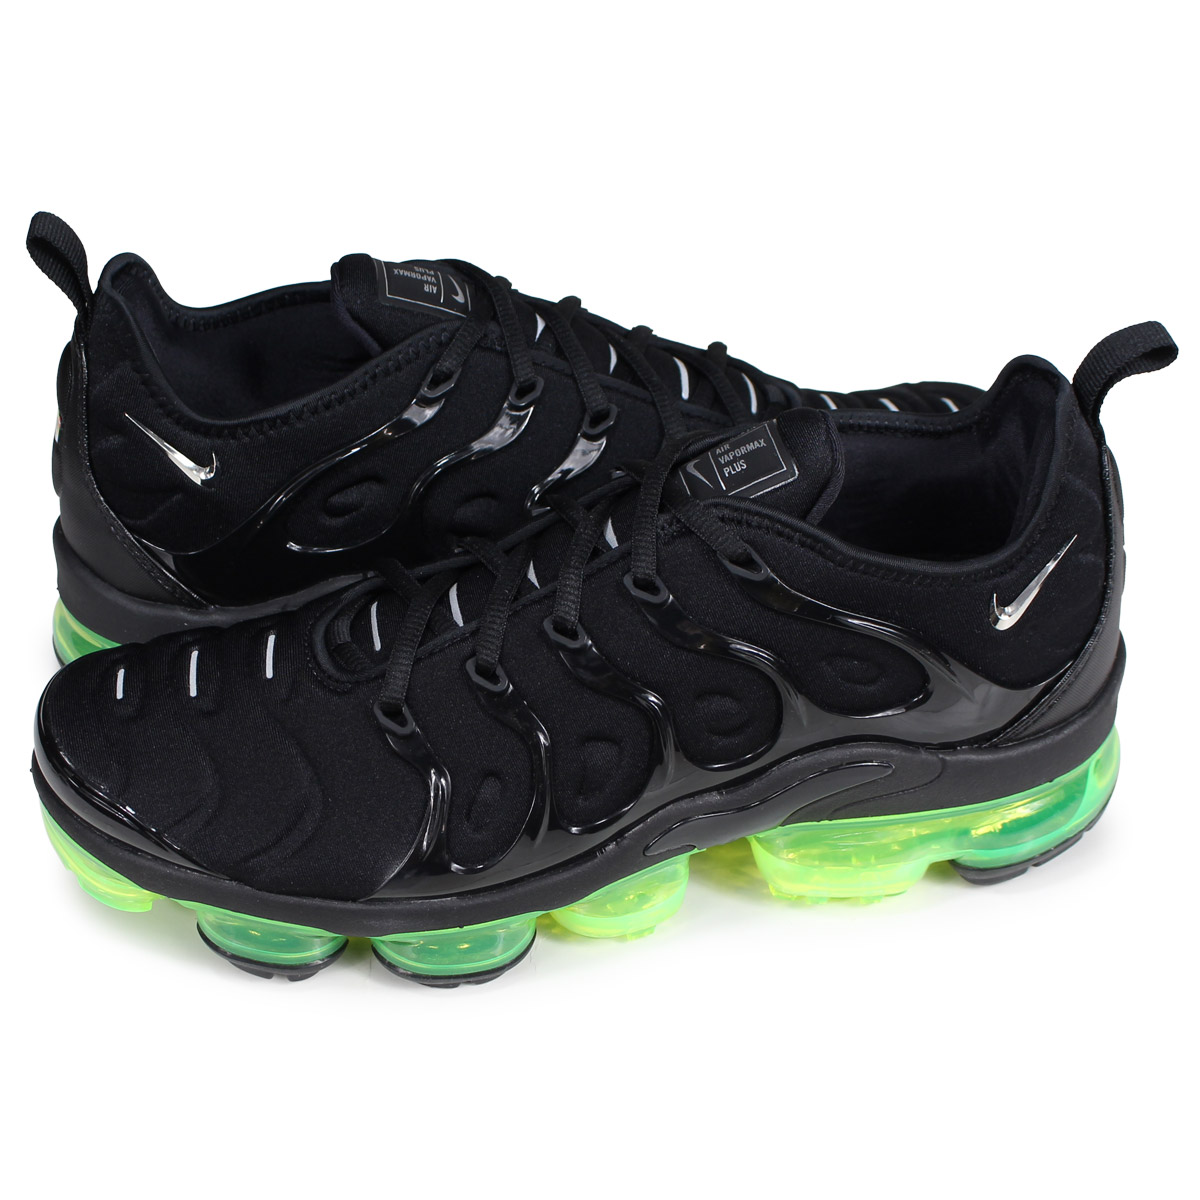 ALLSPORTS  Nike NIKE vapor max plus sneakers men AIR VAPORMAX PLUS ... f64ac4375